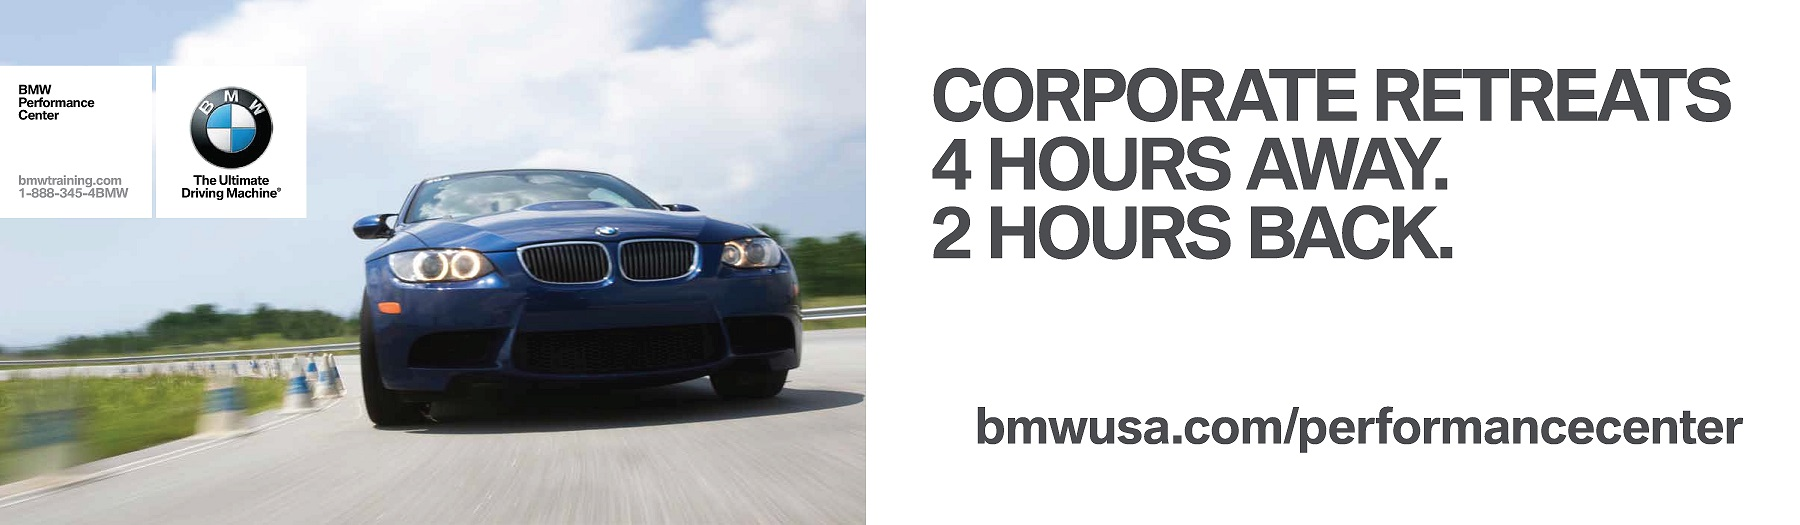 BMW-Performance-Center-advertising-copywriting-Lochness-Marketing-corporate-retreats